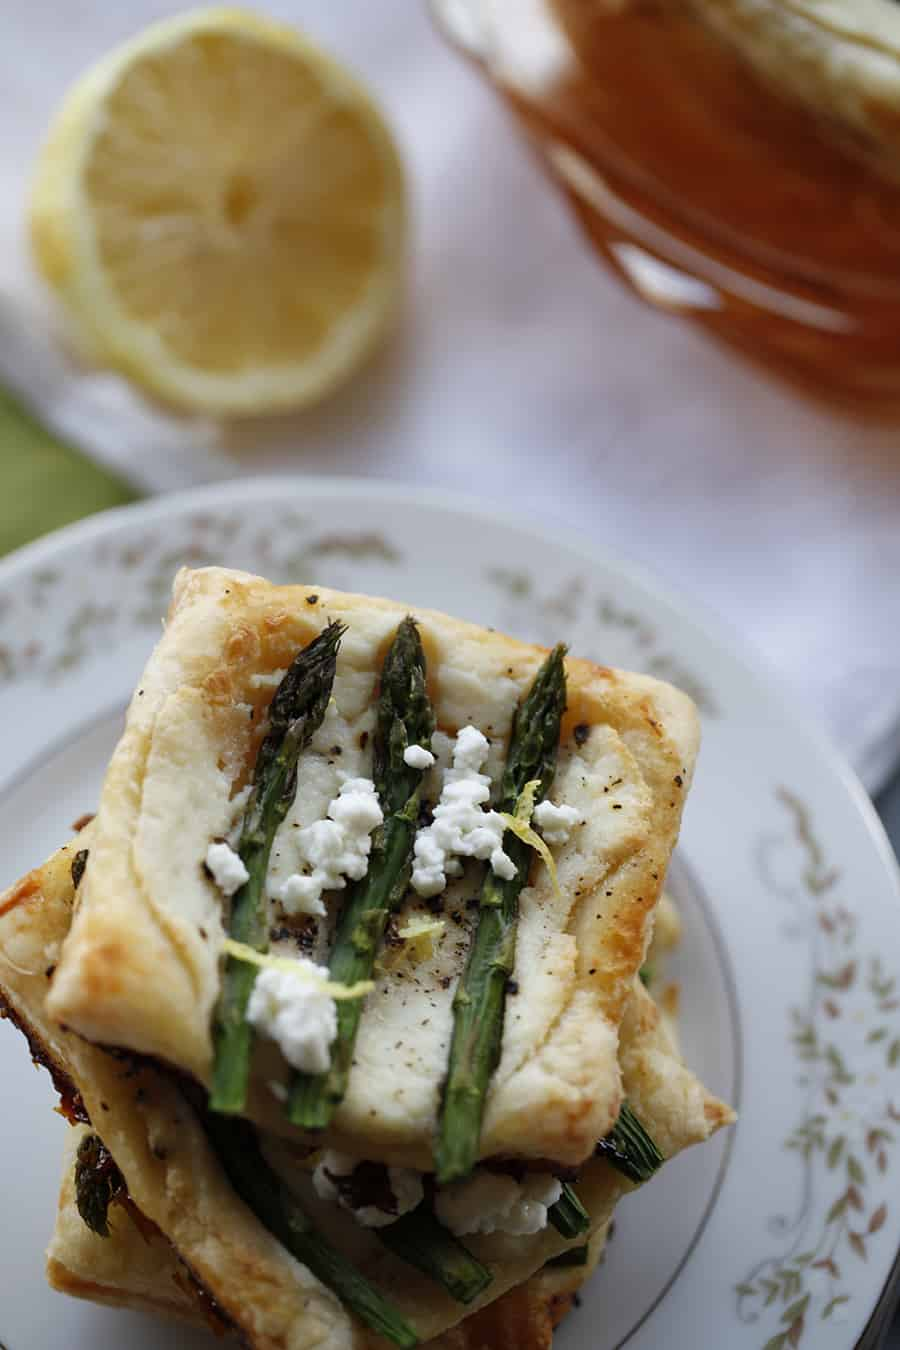 This asparagus ricotta puff pastry tart is a perfect side dish or appetizer for a spring or summer tea party!